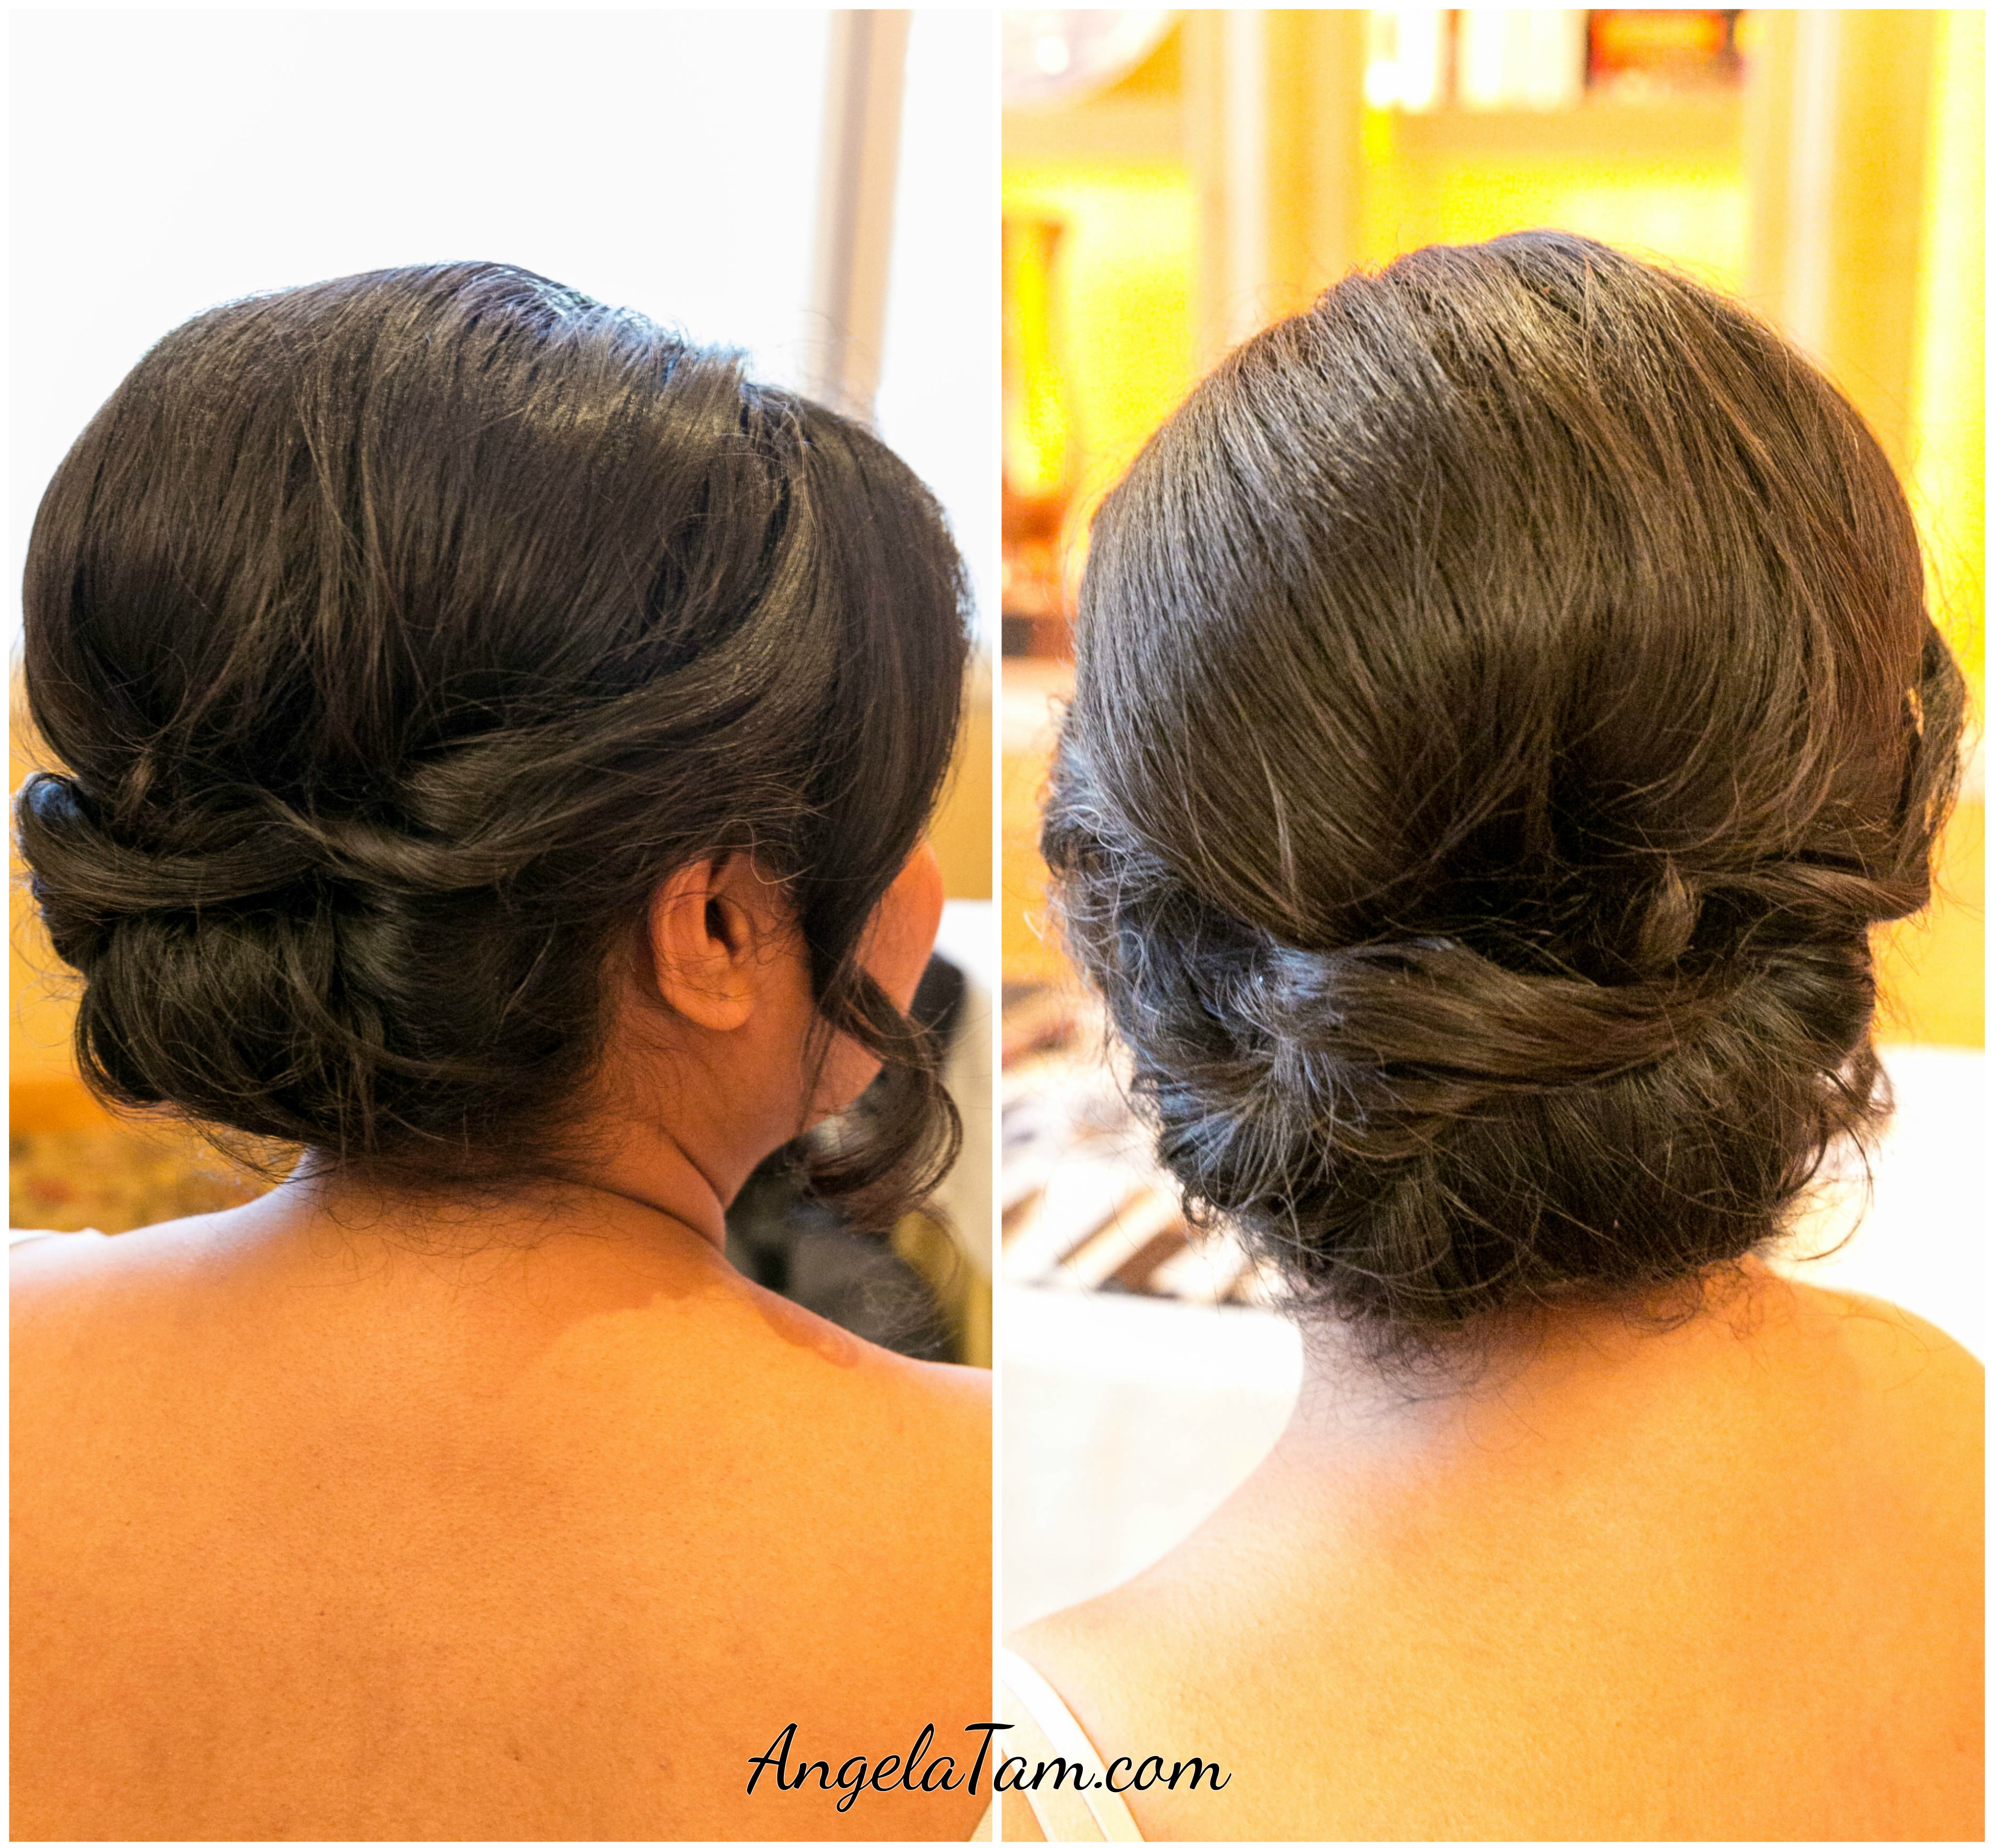 Indian Loose Hair Wedding Hairstyles: Bridal Loose Bun Updo Hair Style >> Angela Tam Makeup Hair